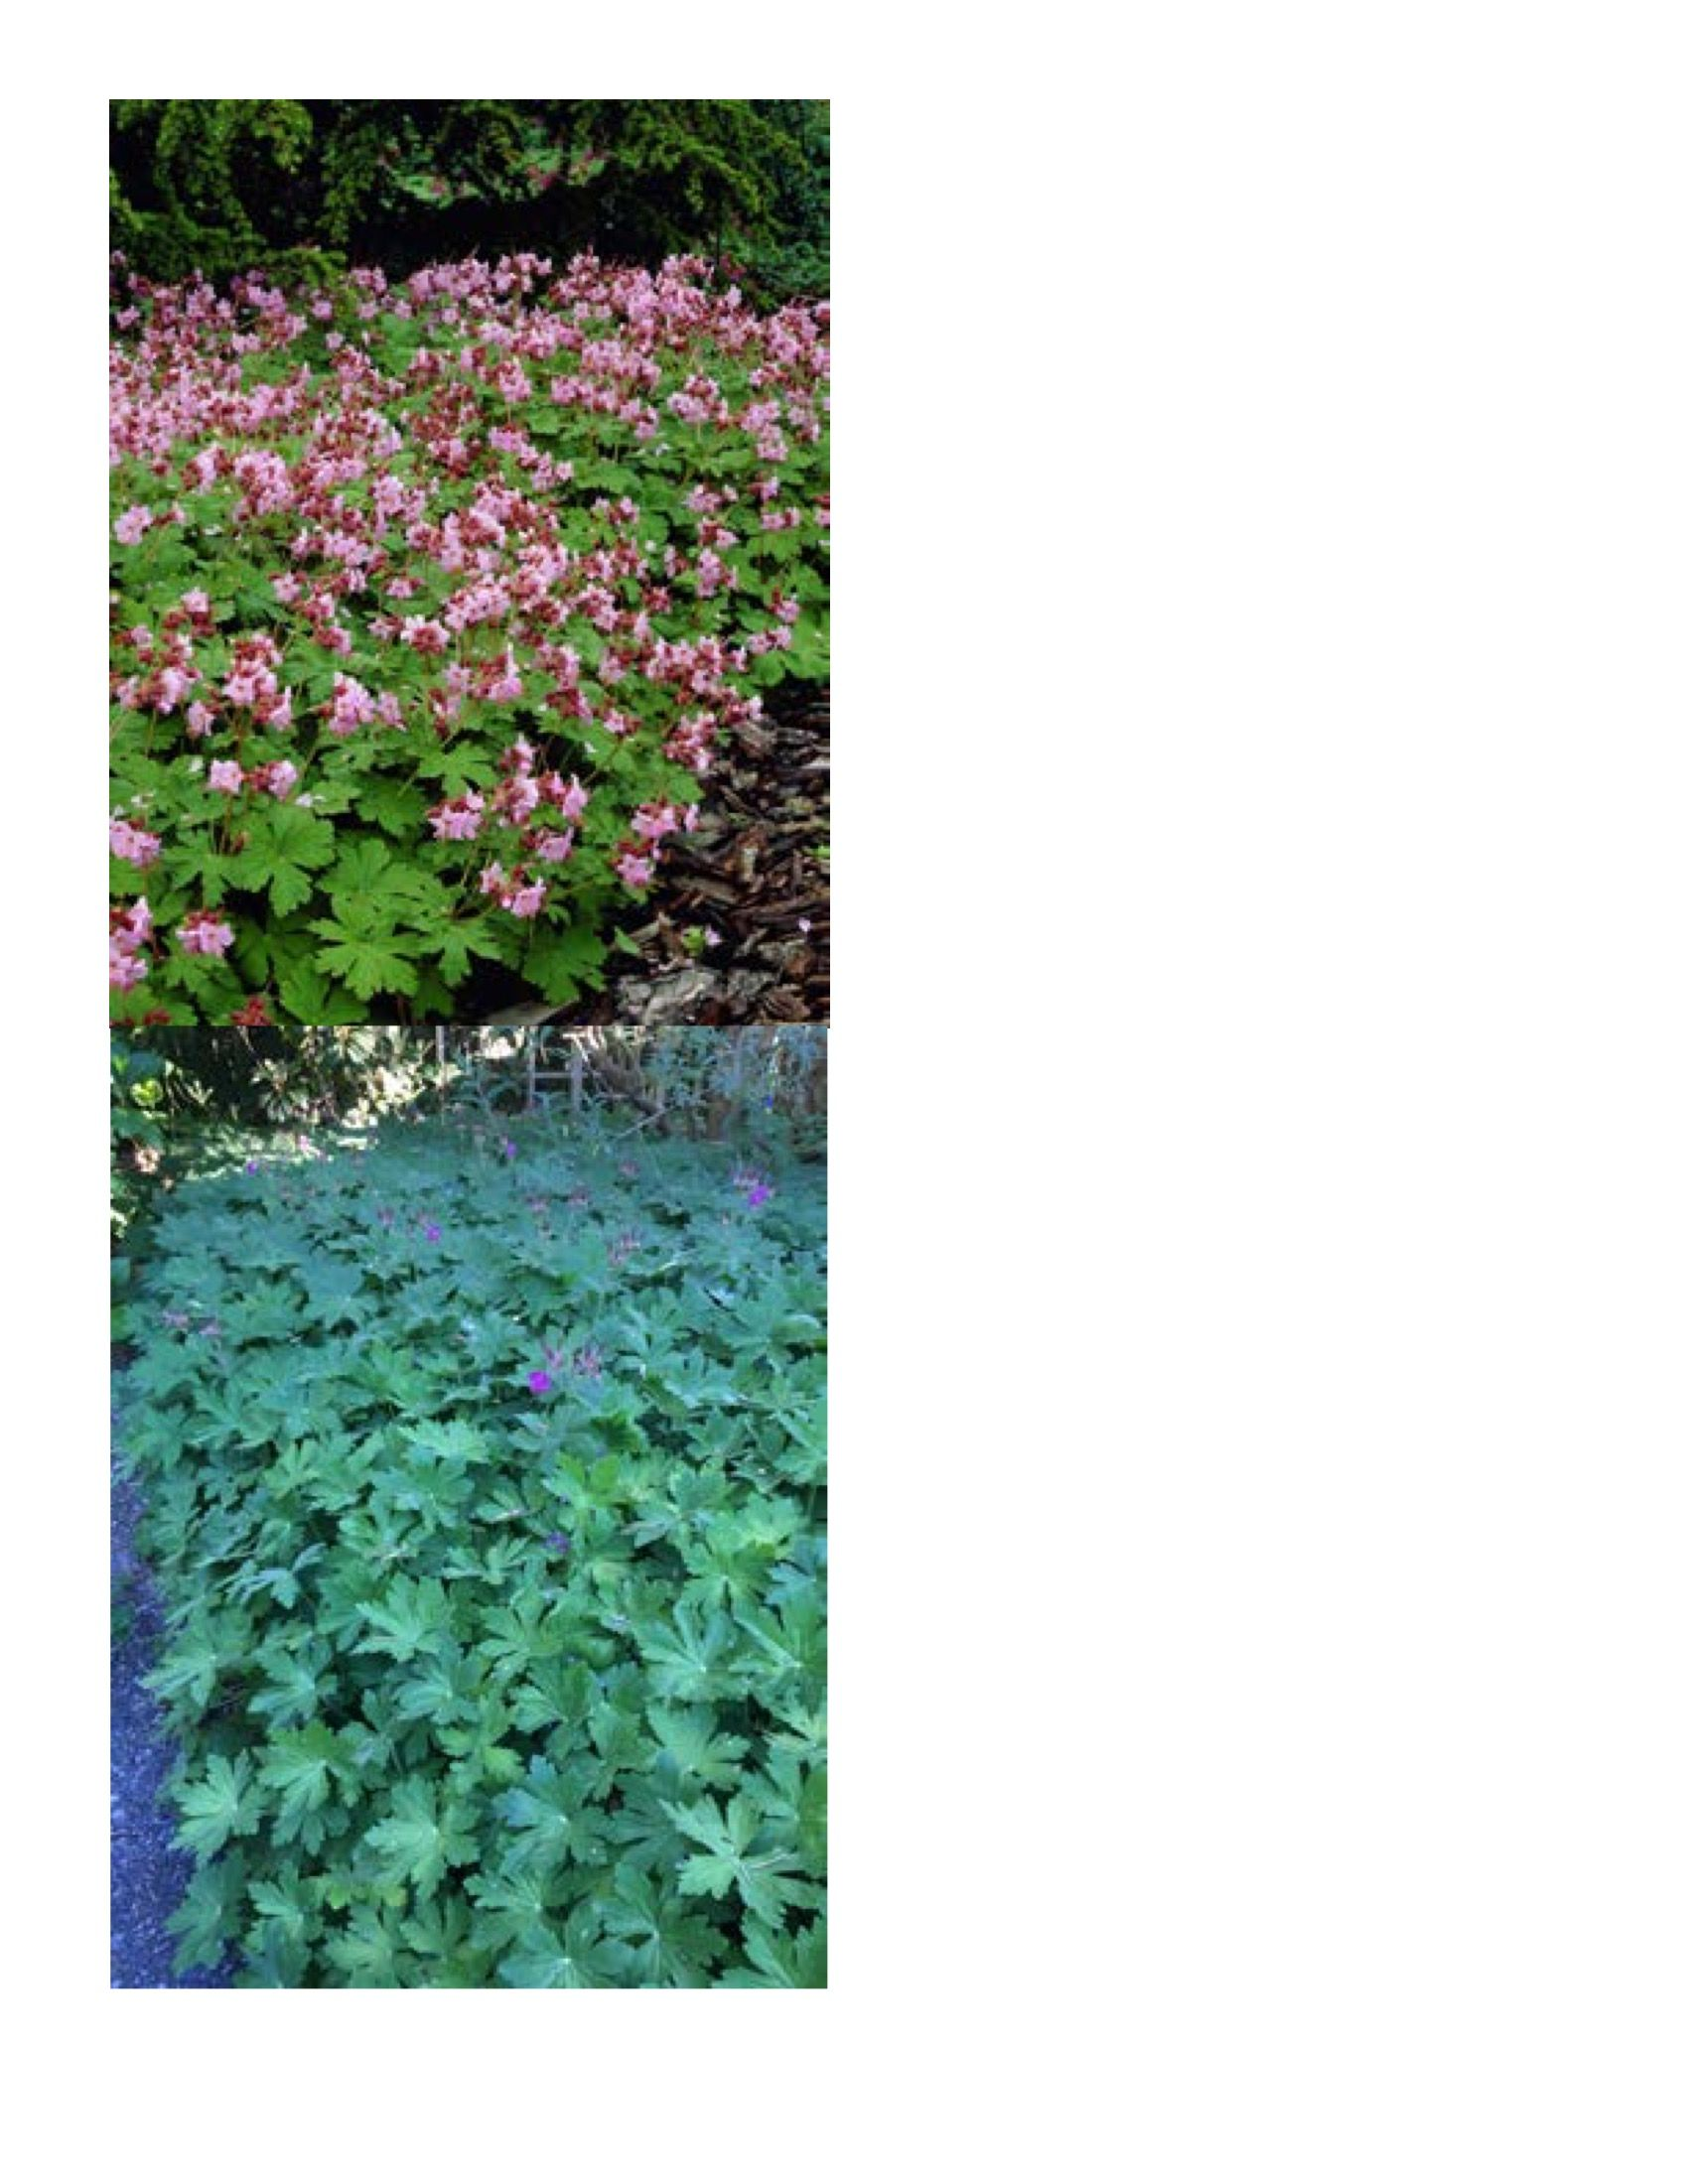 Geranium macrorrhizum. Amazing evergreen perennial. Likes some shade. How to propagate. Break off stem, place on compost and walk away. How to control. Pick plant up. This plant has great Spring flowers, nice fall tints, evergreen herbaceous leaves, spreads easily in shade, easy to control.